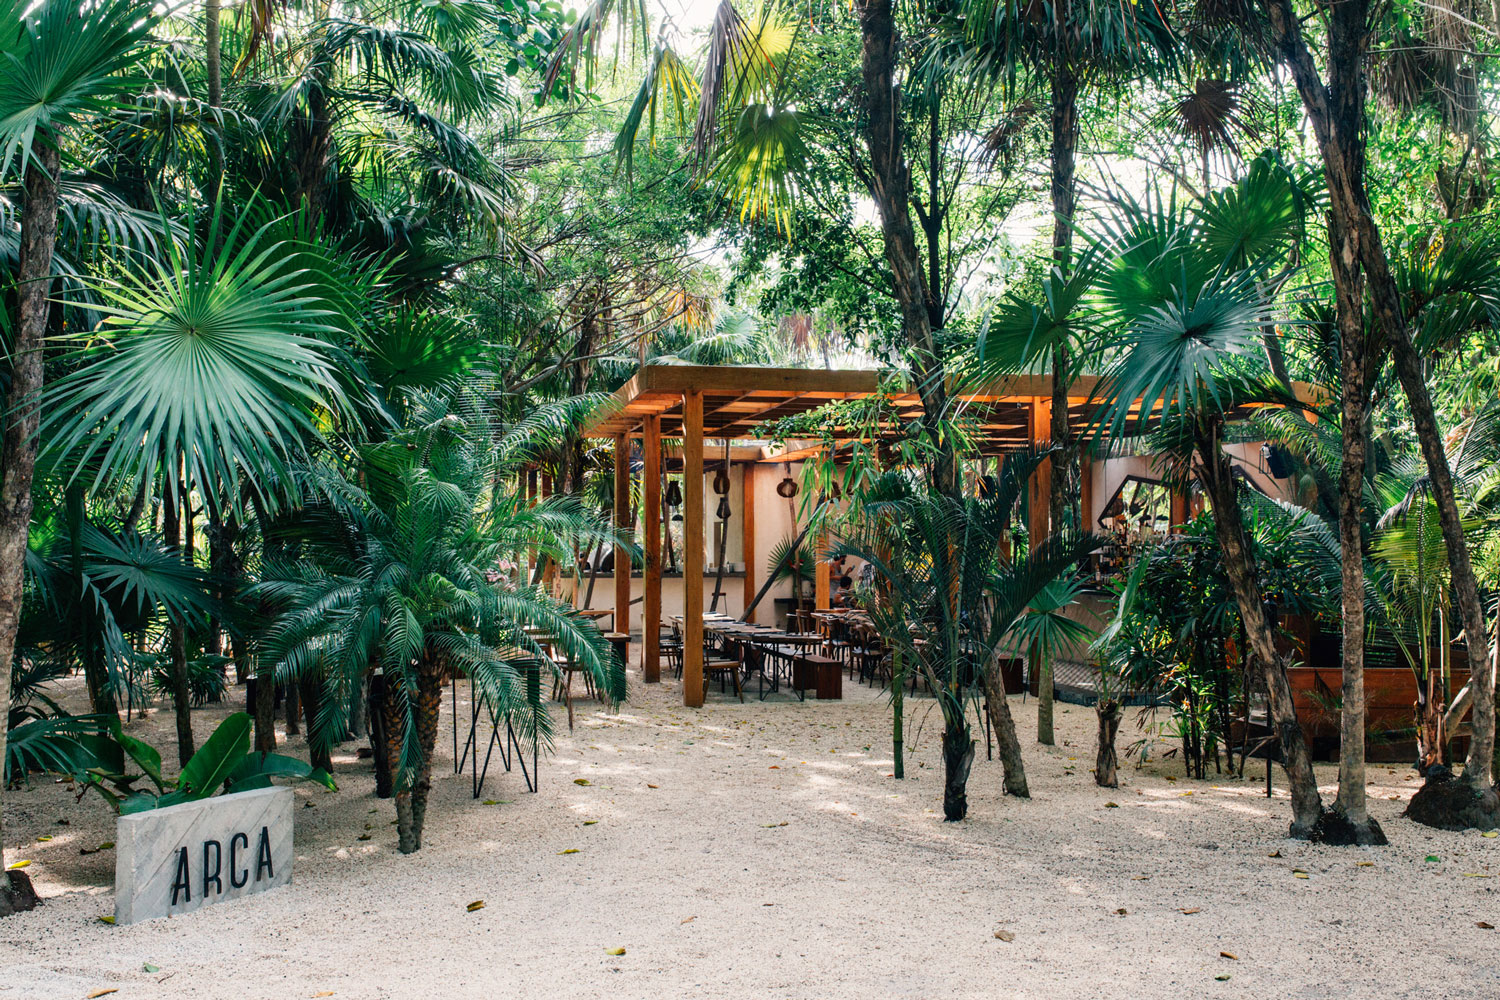 The_Ink_Collective_Inside_Ink_Articles_Travel_Review_Tulum_Bohemian_Paradise_44.jpg